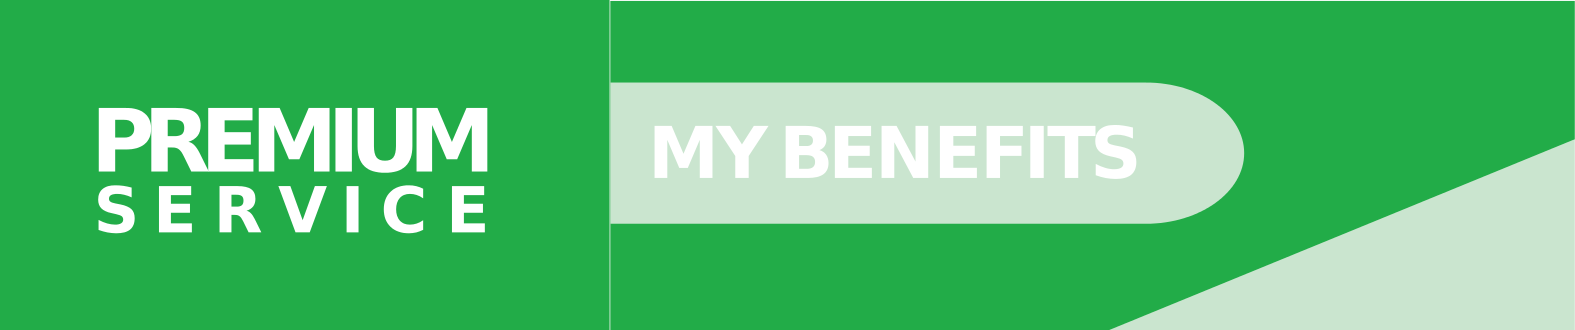 Maintain Me Premium Service - My Benefits